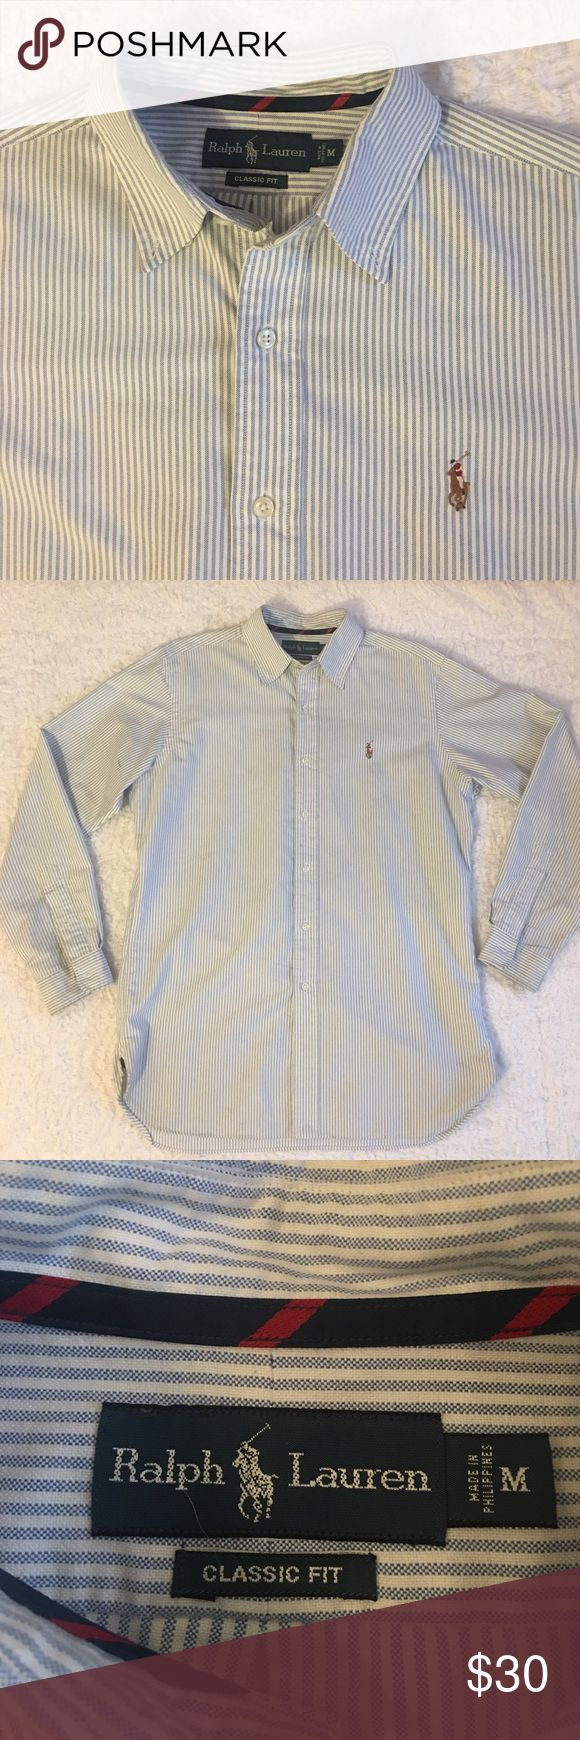 Ralph Lauren Long Sleeve Button Down Shirt(Medium) Ralph Lauren Long Sleeve Button Down. Classic fit shirt. White with light blue stripes. Small pen mark on the left under arm area. Lightly worn. Over all in good condition. Ralph Lauren Shirts Casual Button Down Shirts